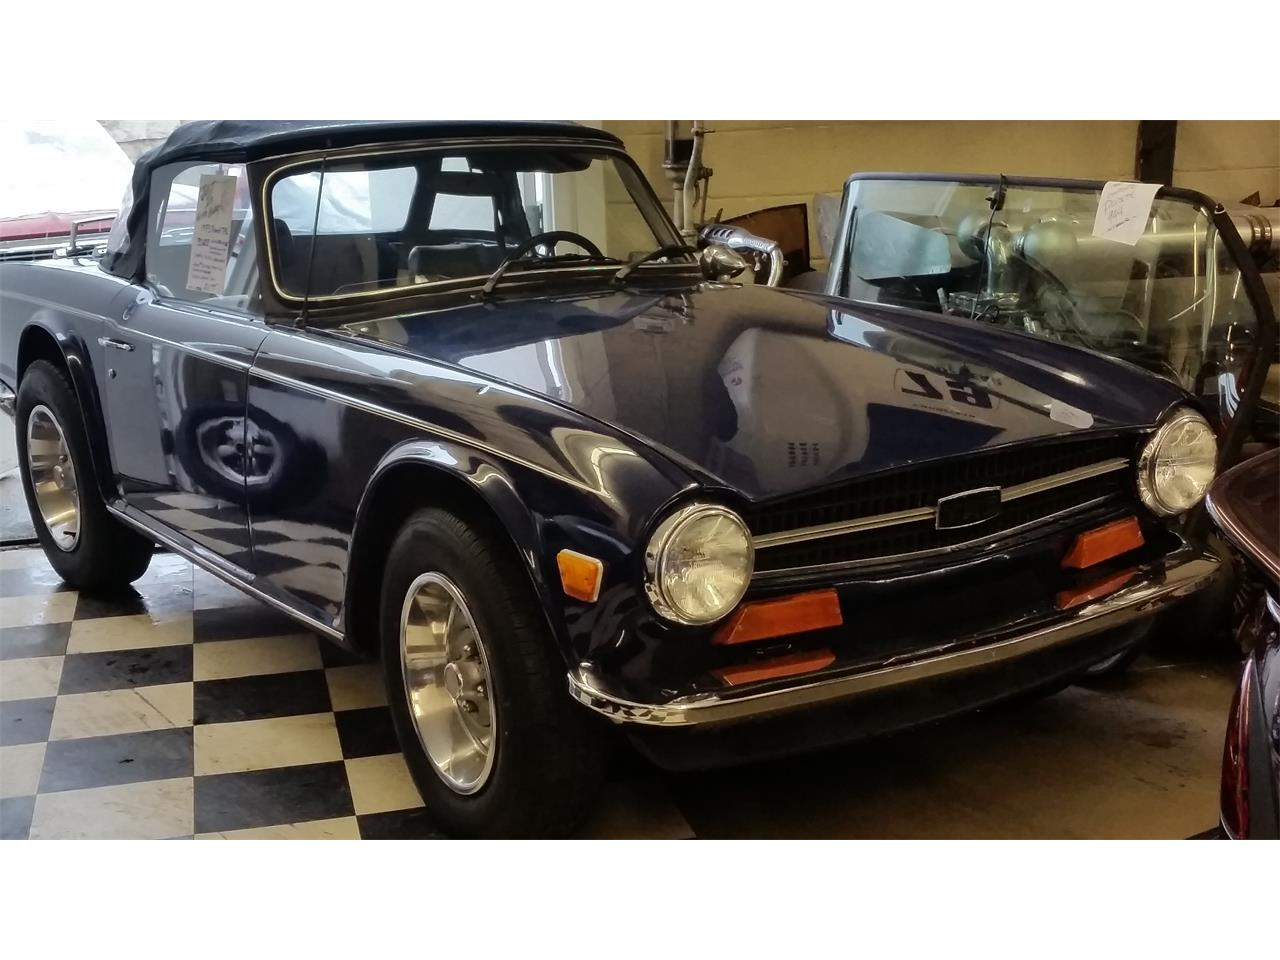 1973 Triumph TR6 for sale in Carnation, WA – photo 6